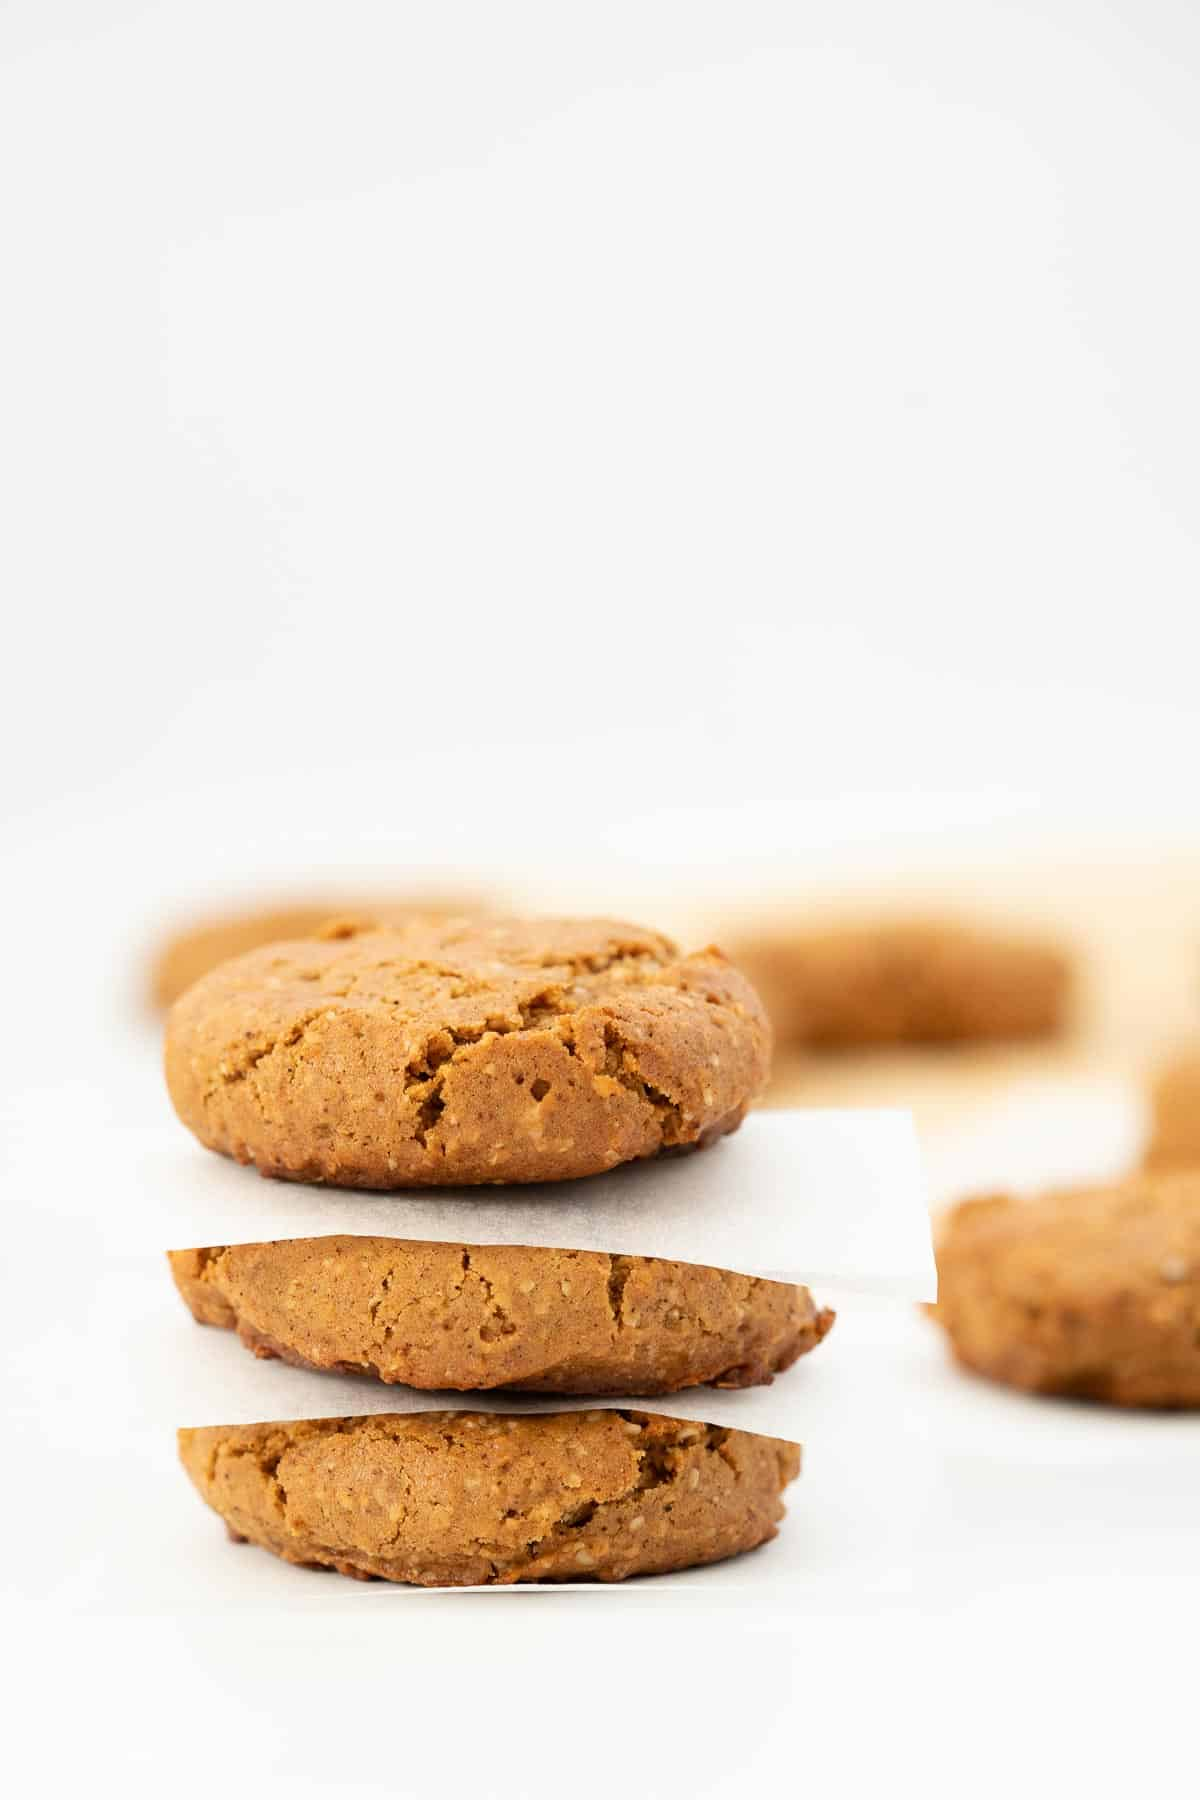 A stack of 3 cinnamon cookies, each cookie separated by a square piece of white paper.